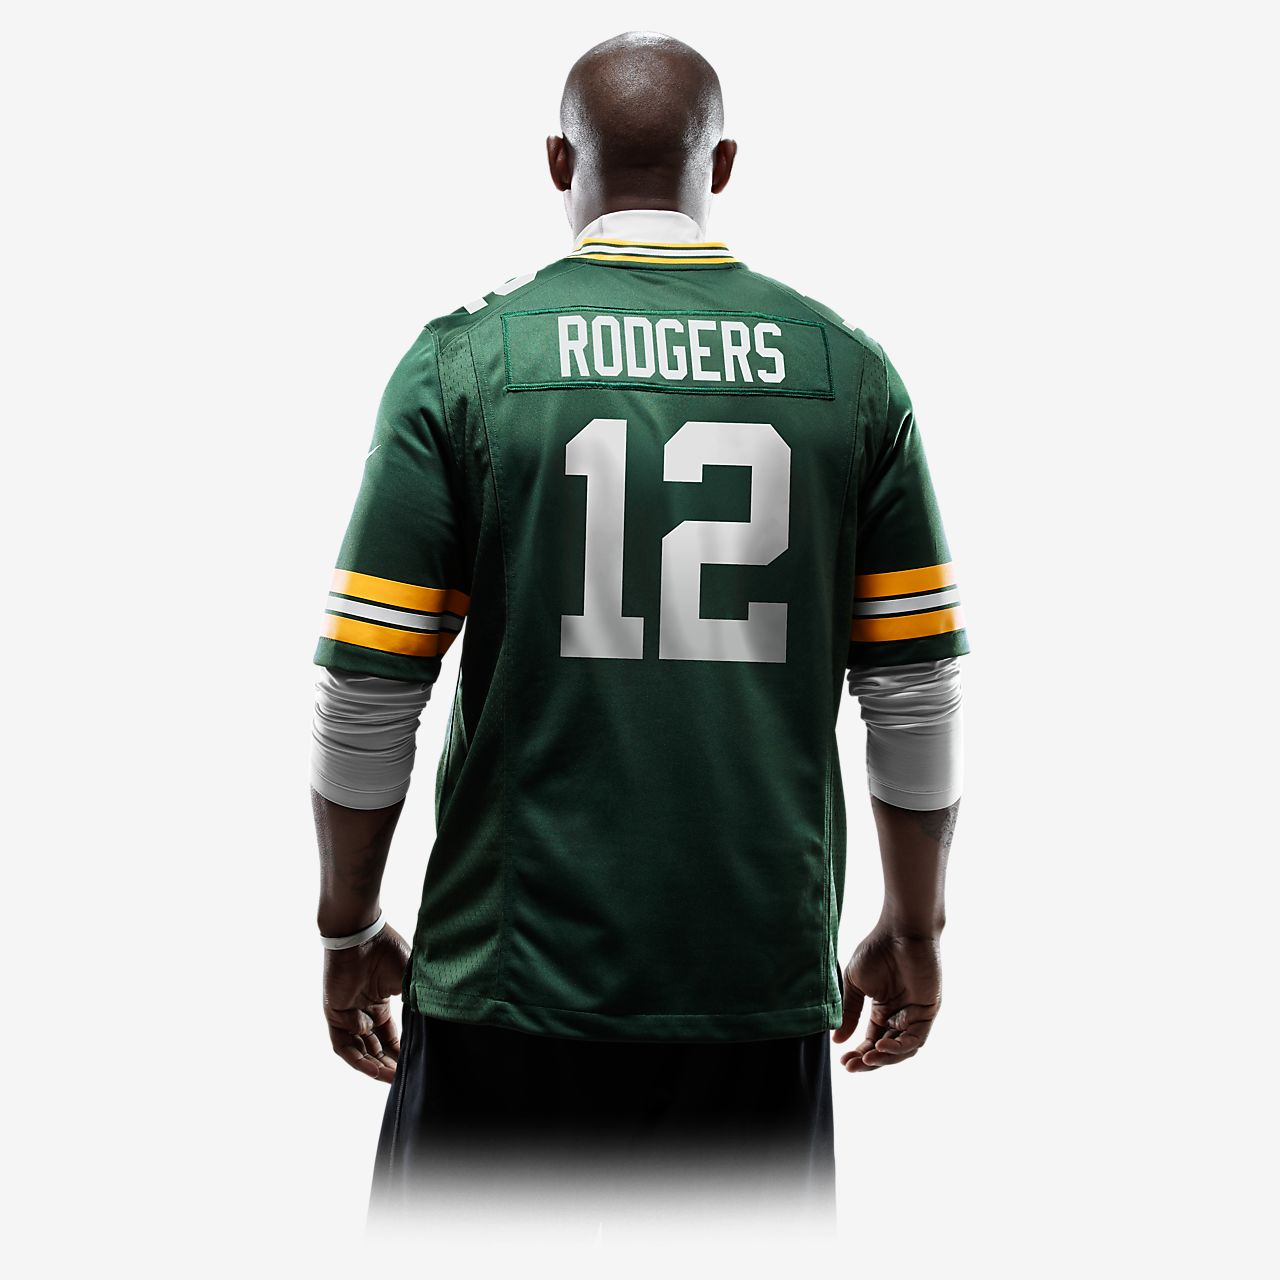 new arrivals bba72 4dca8 NFL Green Bay Packers (Aaron Rodgers) Men's Football Home Game Jersey